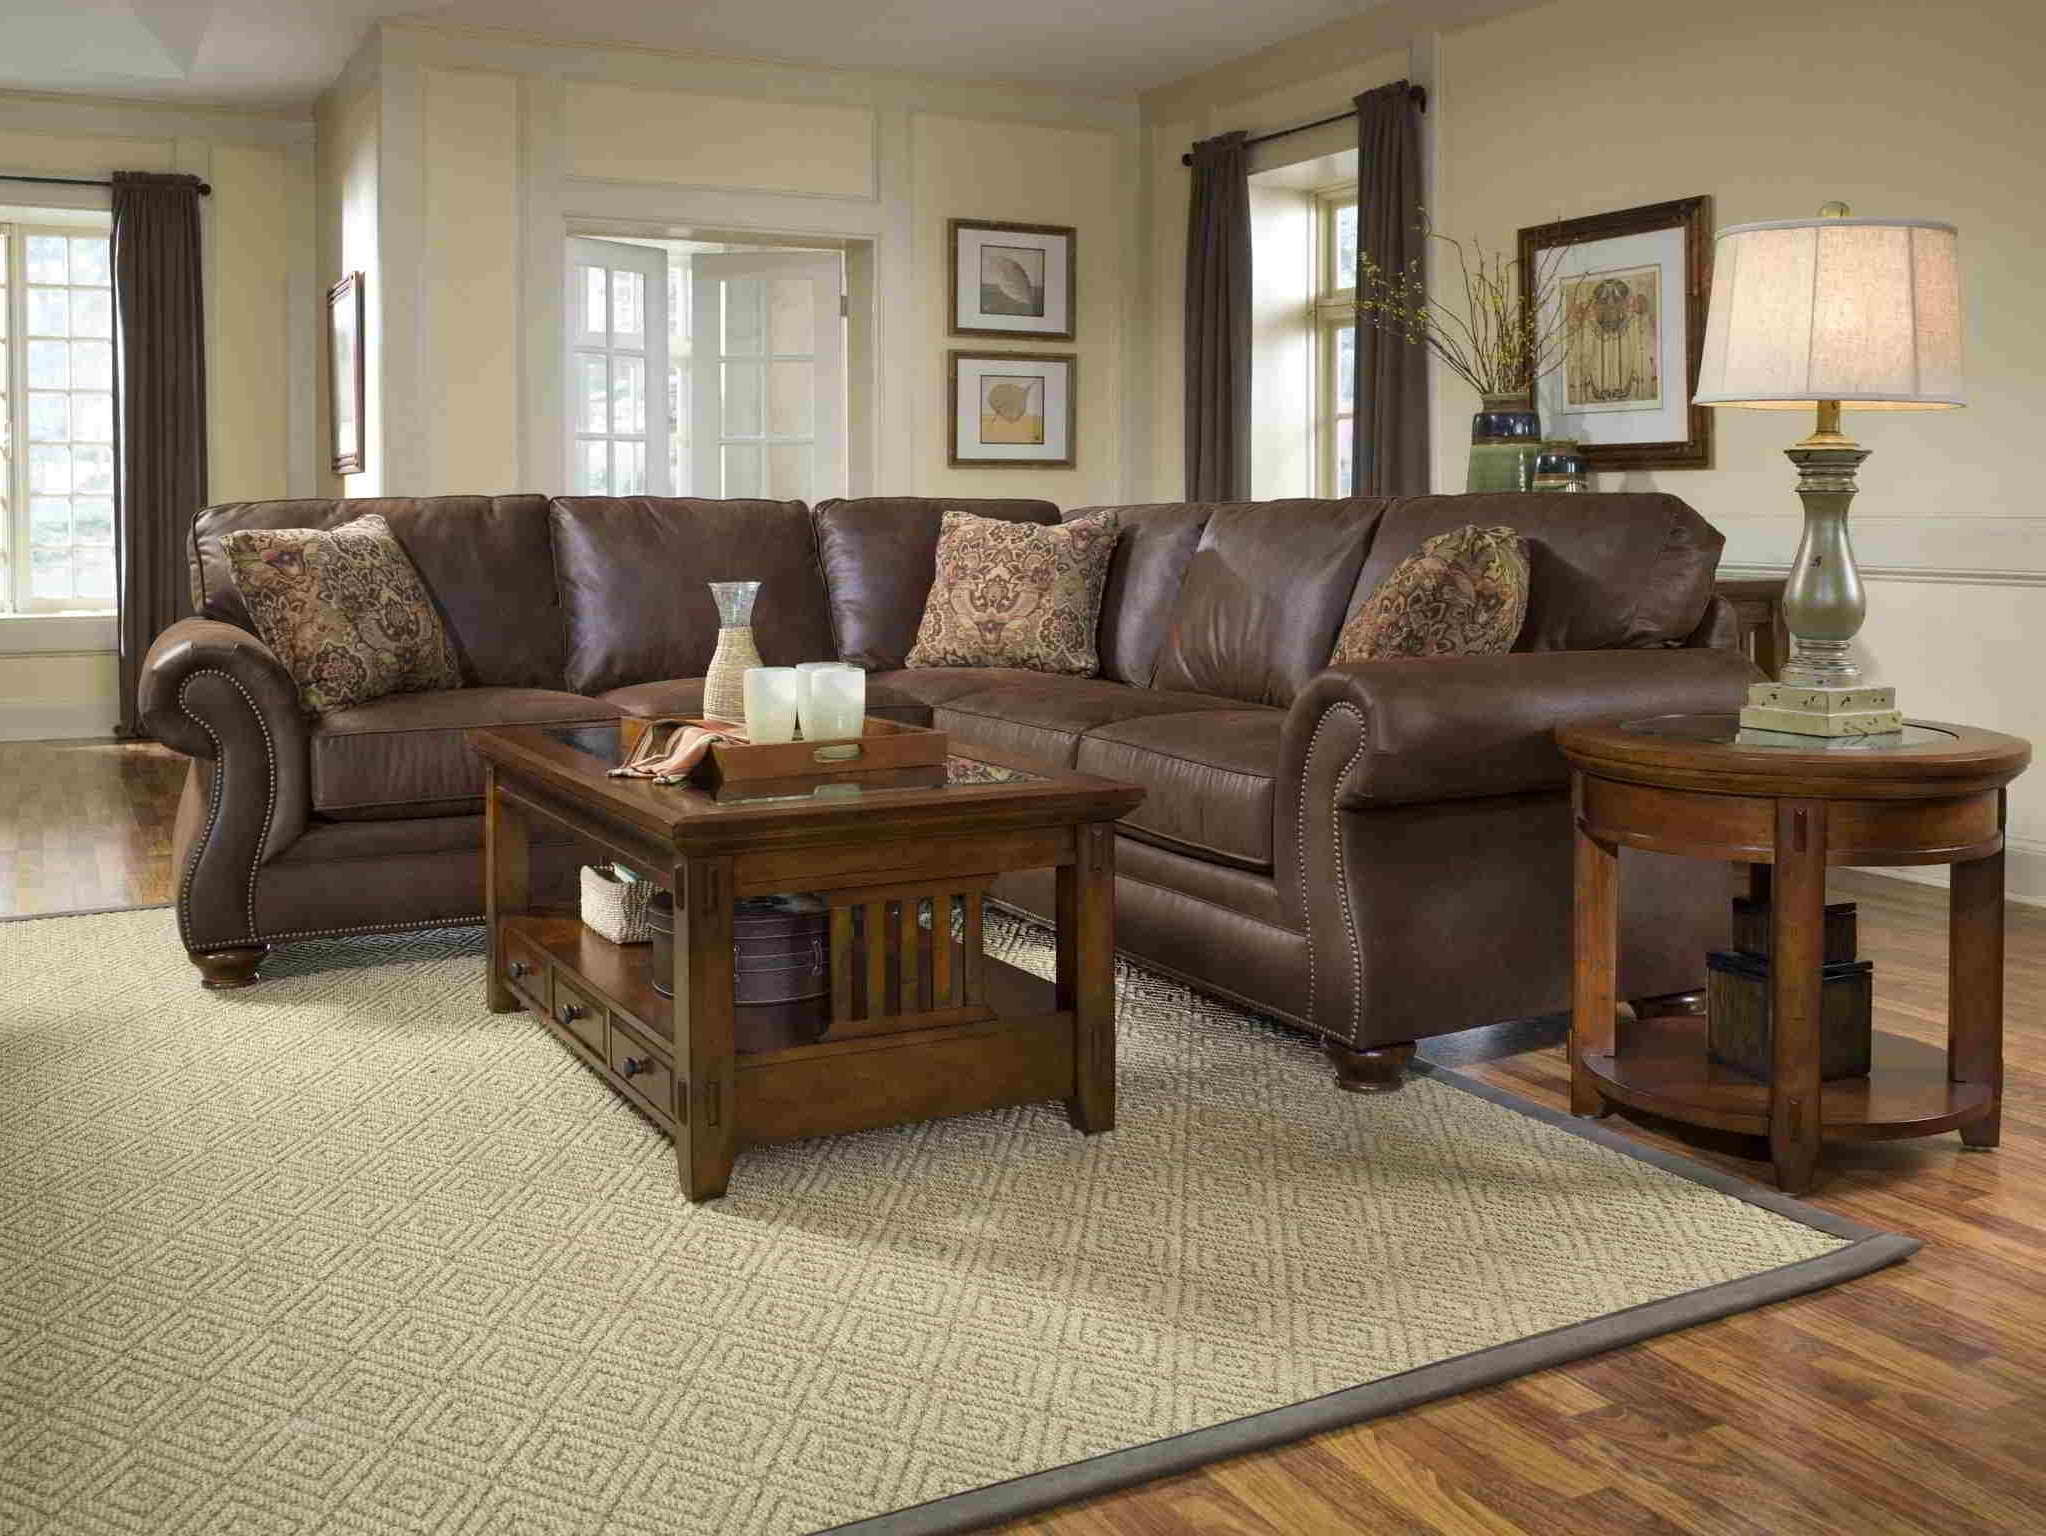 Current Country Style Sofas Uk Hereo Sofa – Helena Source Regarding Country Style Sofas (View 2 of 15)